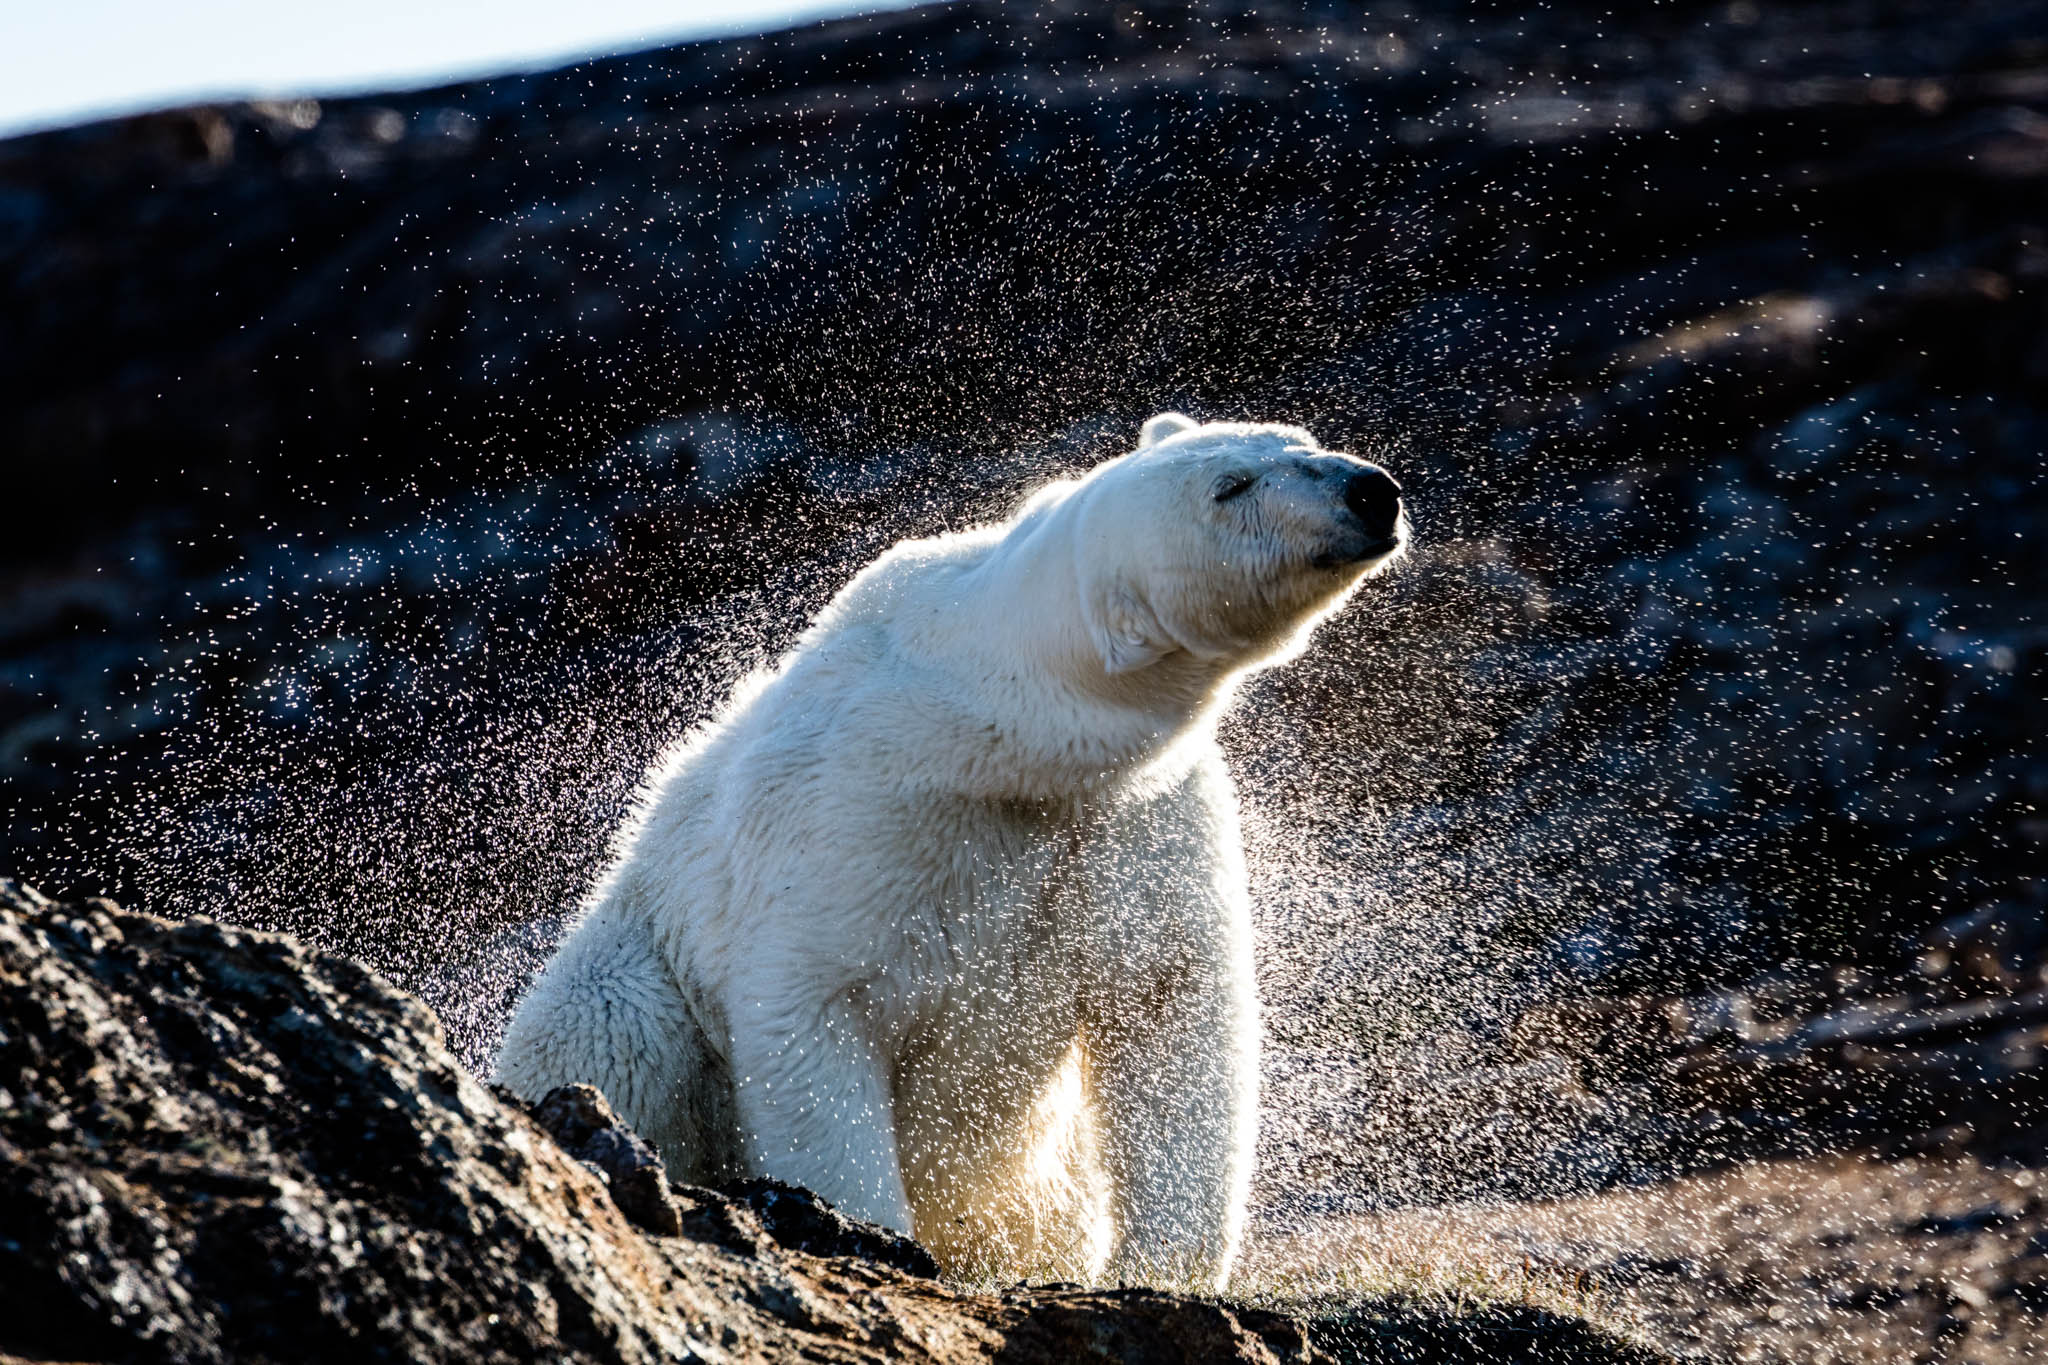 Join One Ocean Expeditions on an expedition cruise through the Northwest Passage in Canada's Arctic to see polar bears.